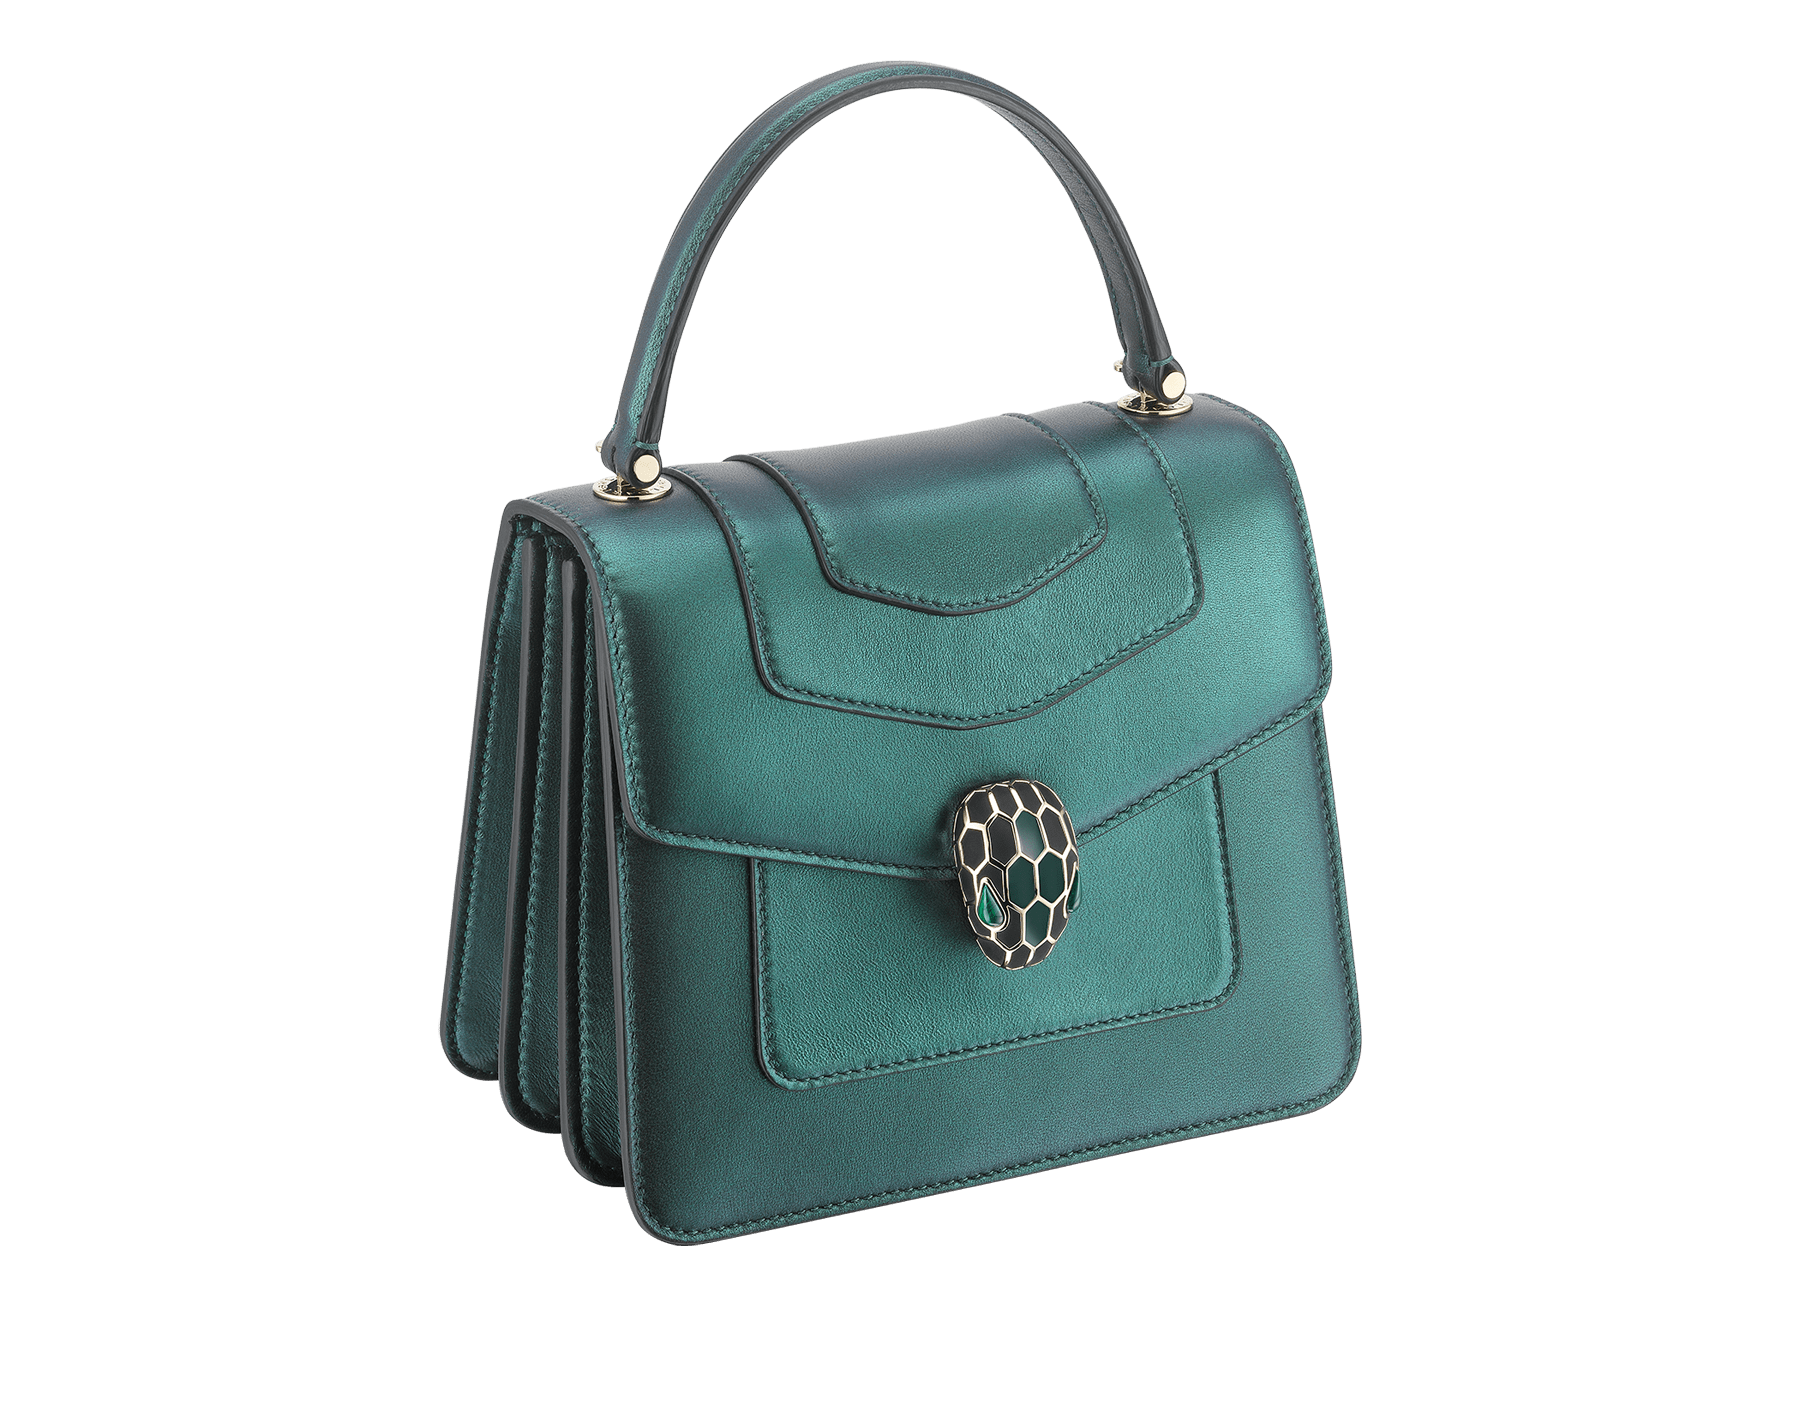 """Serpenti Forever "" crossbody bag in pearled emerald nappa leather. Iconic snakehead closure in light gold plated brass enriched with black and forest emerald enamel and green malachite eyes. Special Edition. 289837 image 2"